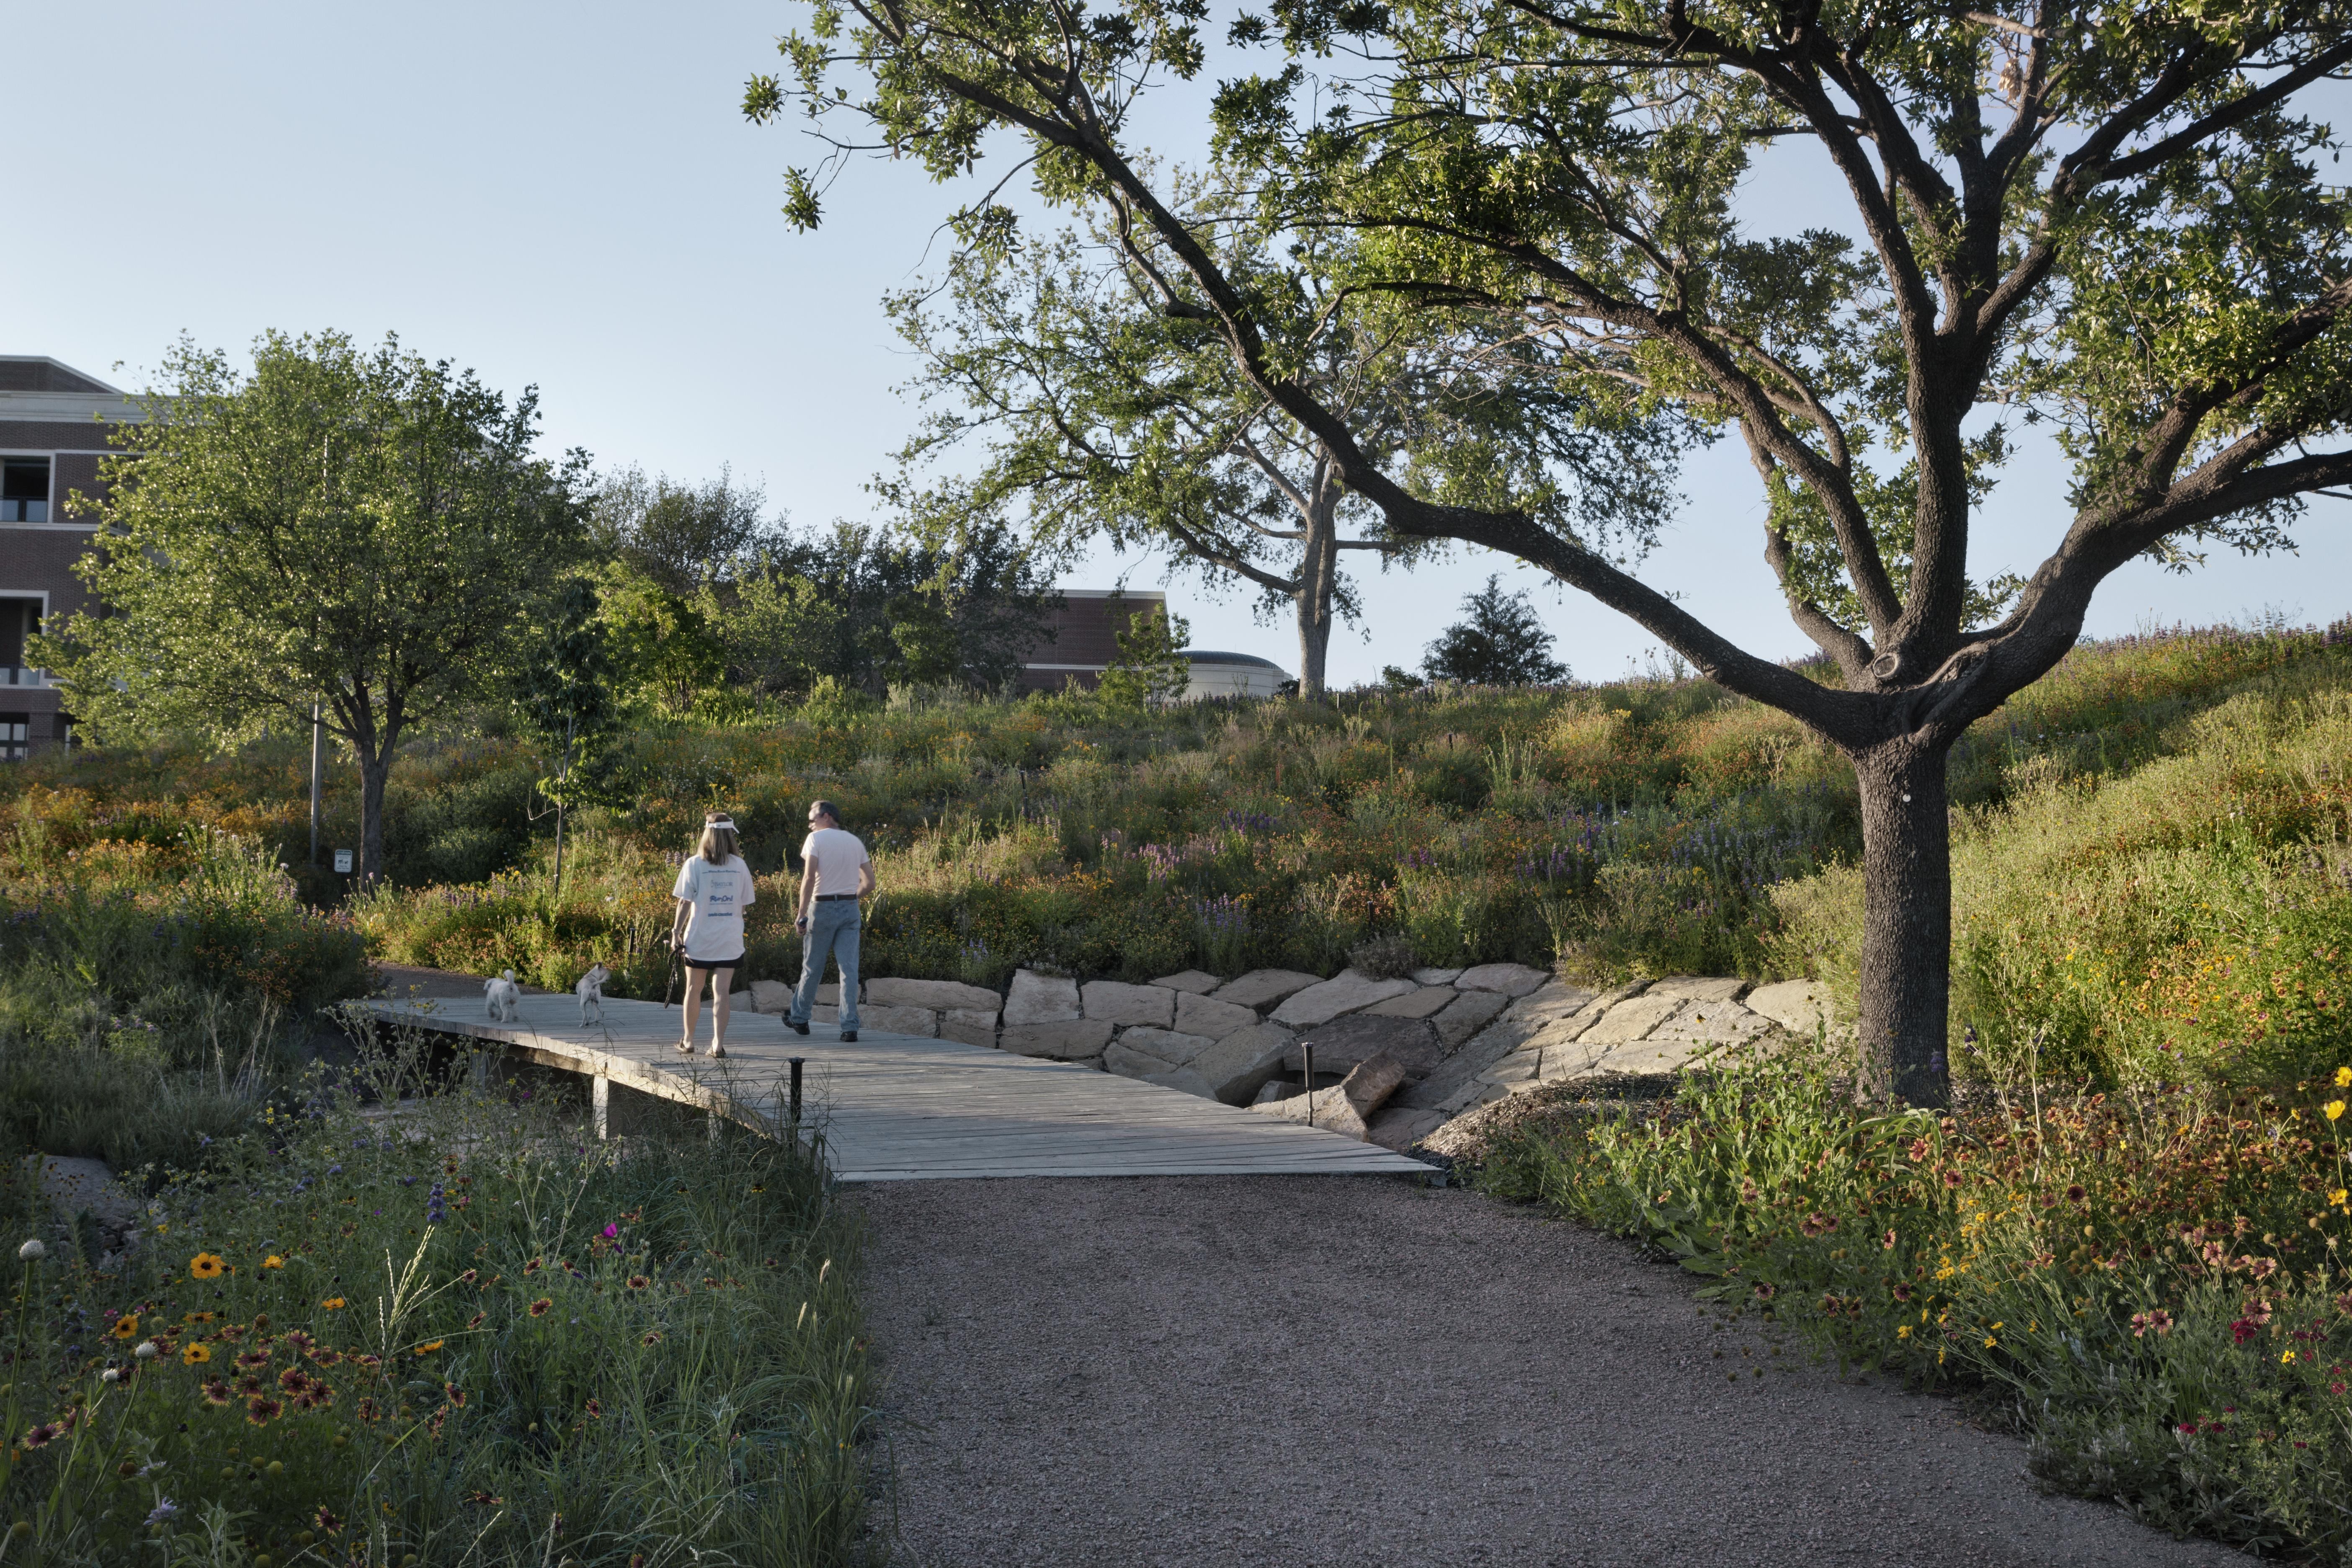 Spring's first wildflowers will be in bloom at SMU's Community Day at the 15-acre Native Texas Park at the George W. Bush Presidential Center, a short walk or shuttle ride from Meadows Museum.